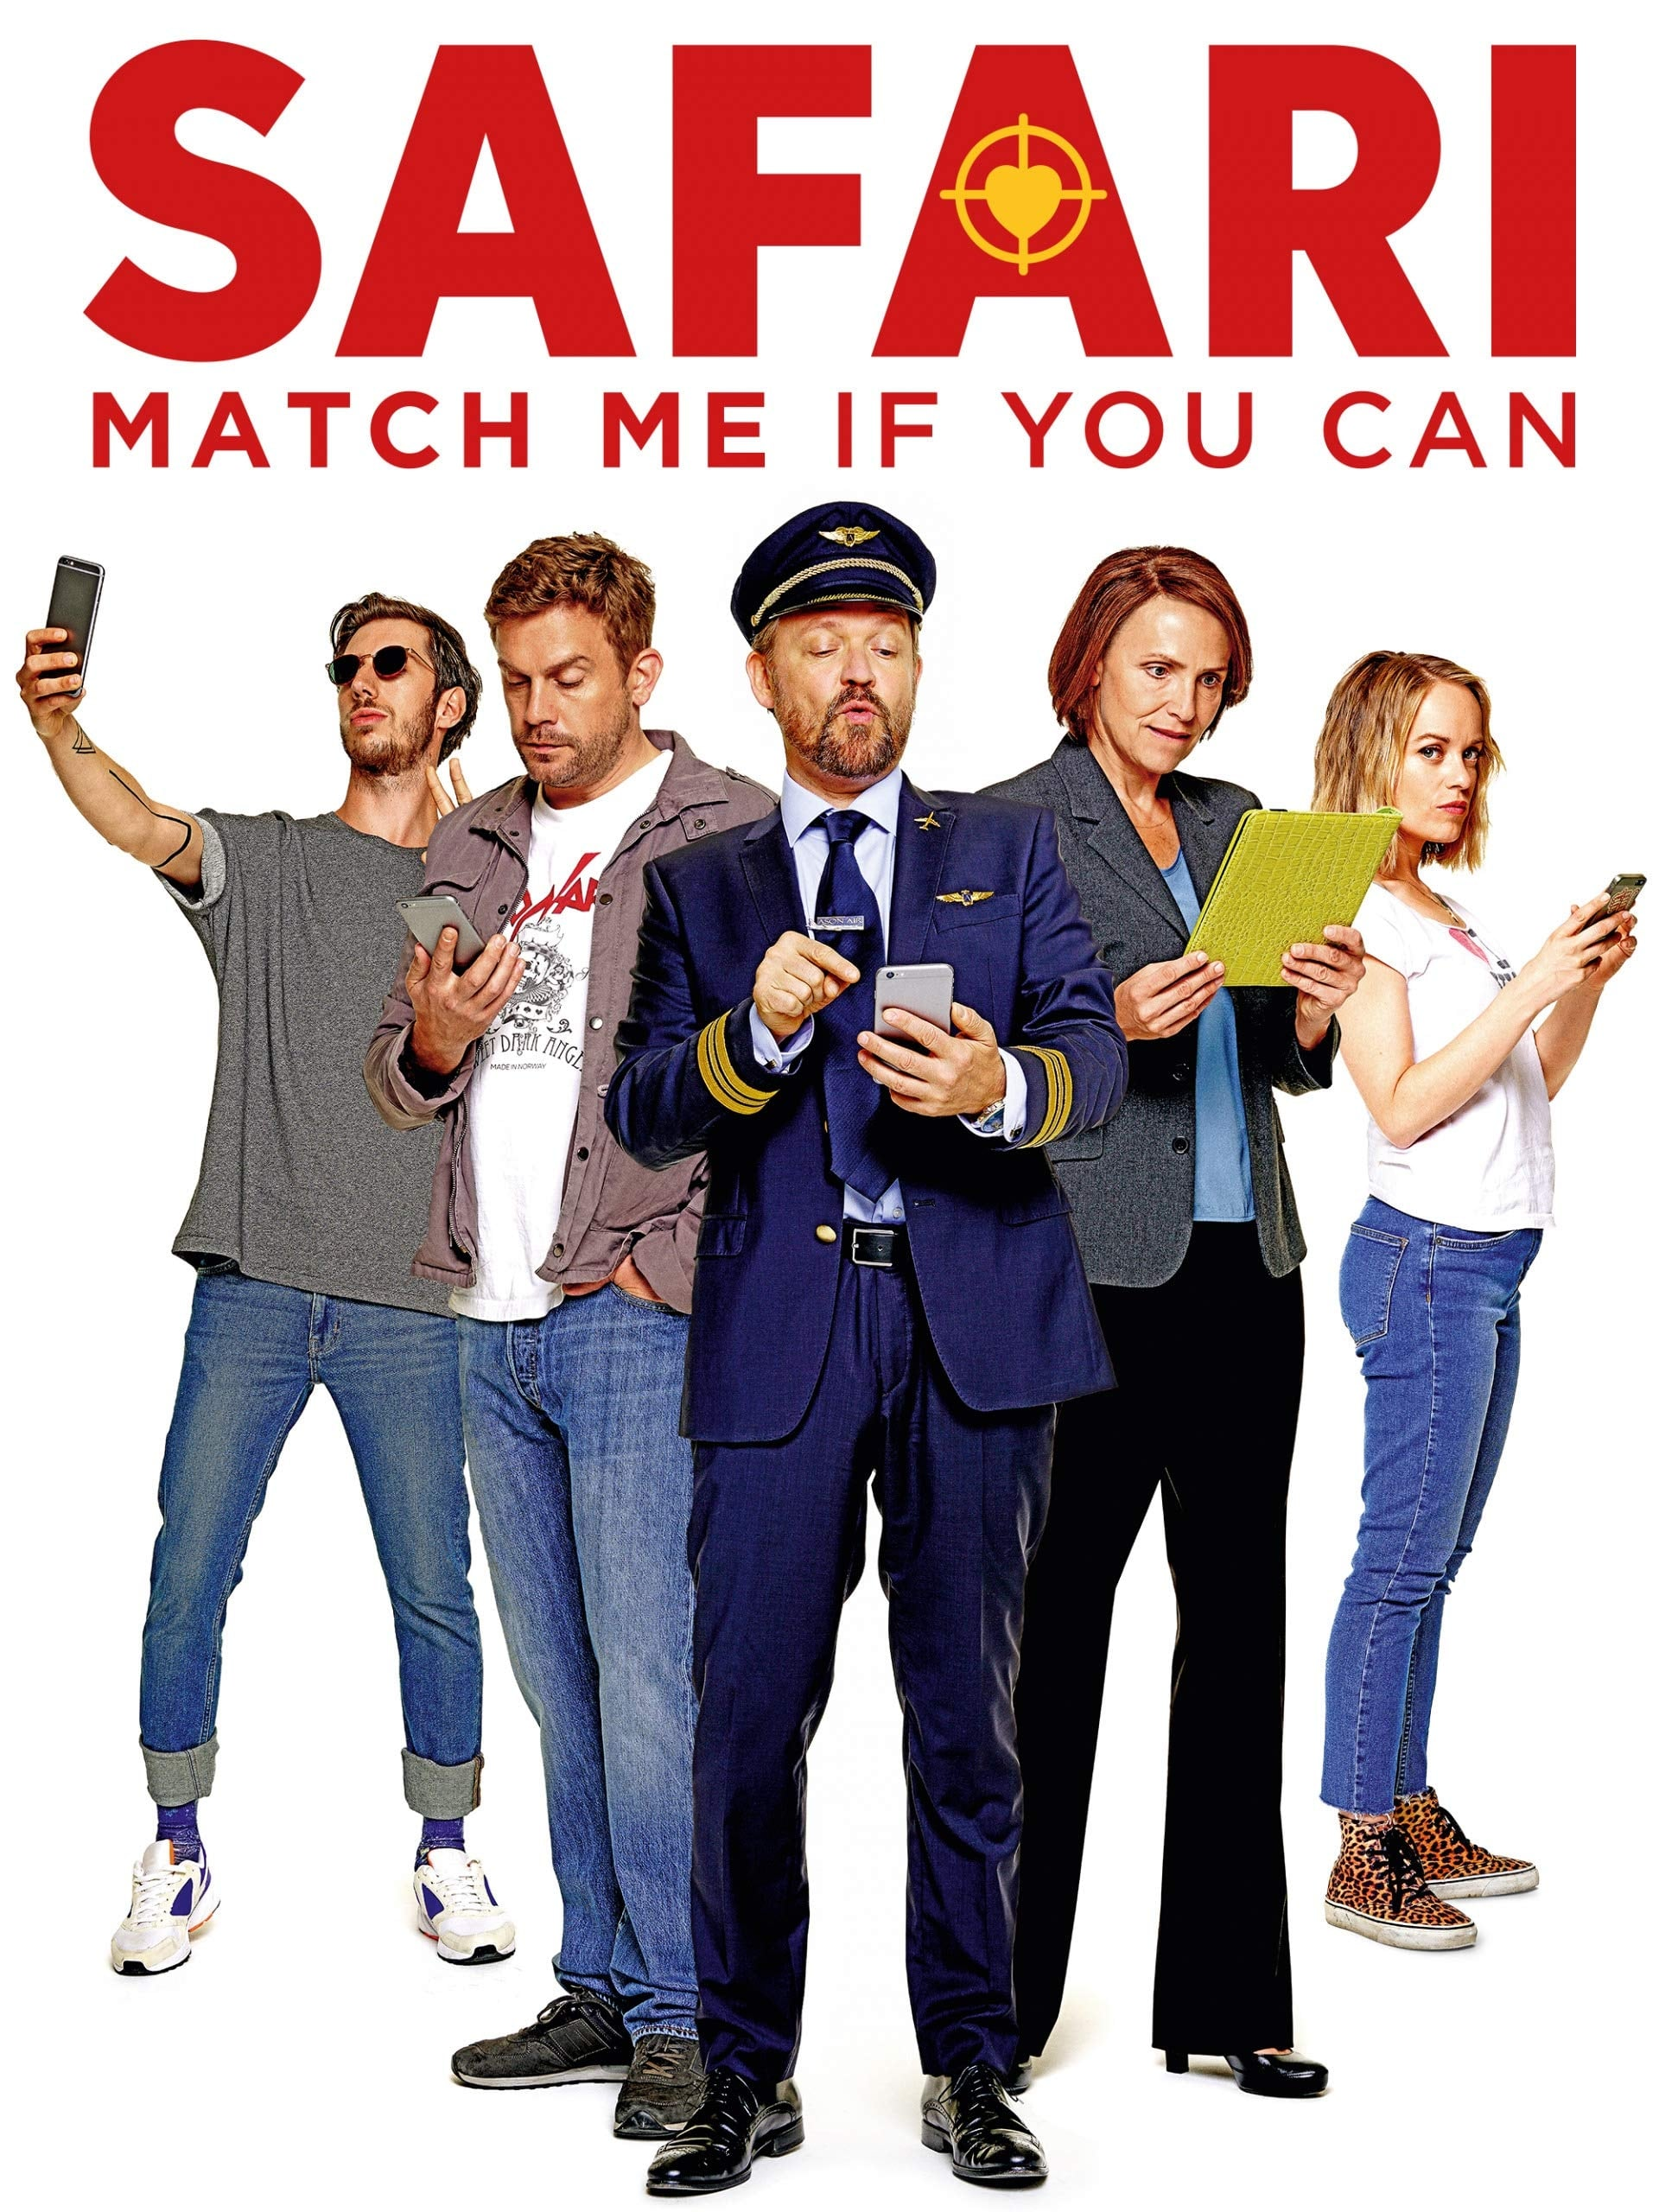 Safari – Match Me If You Can